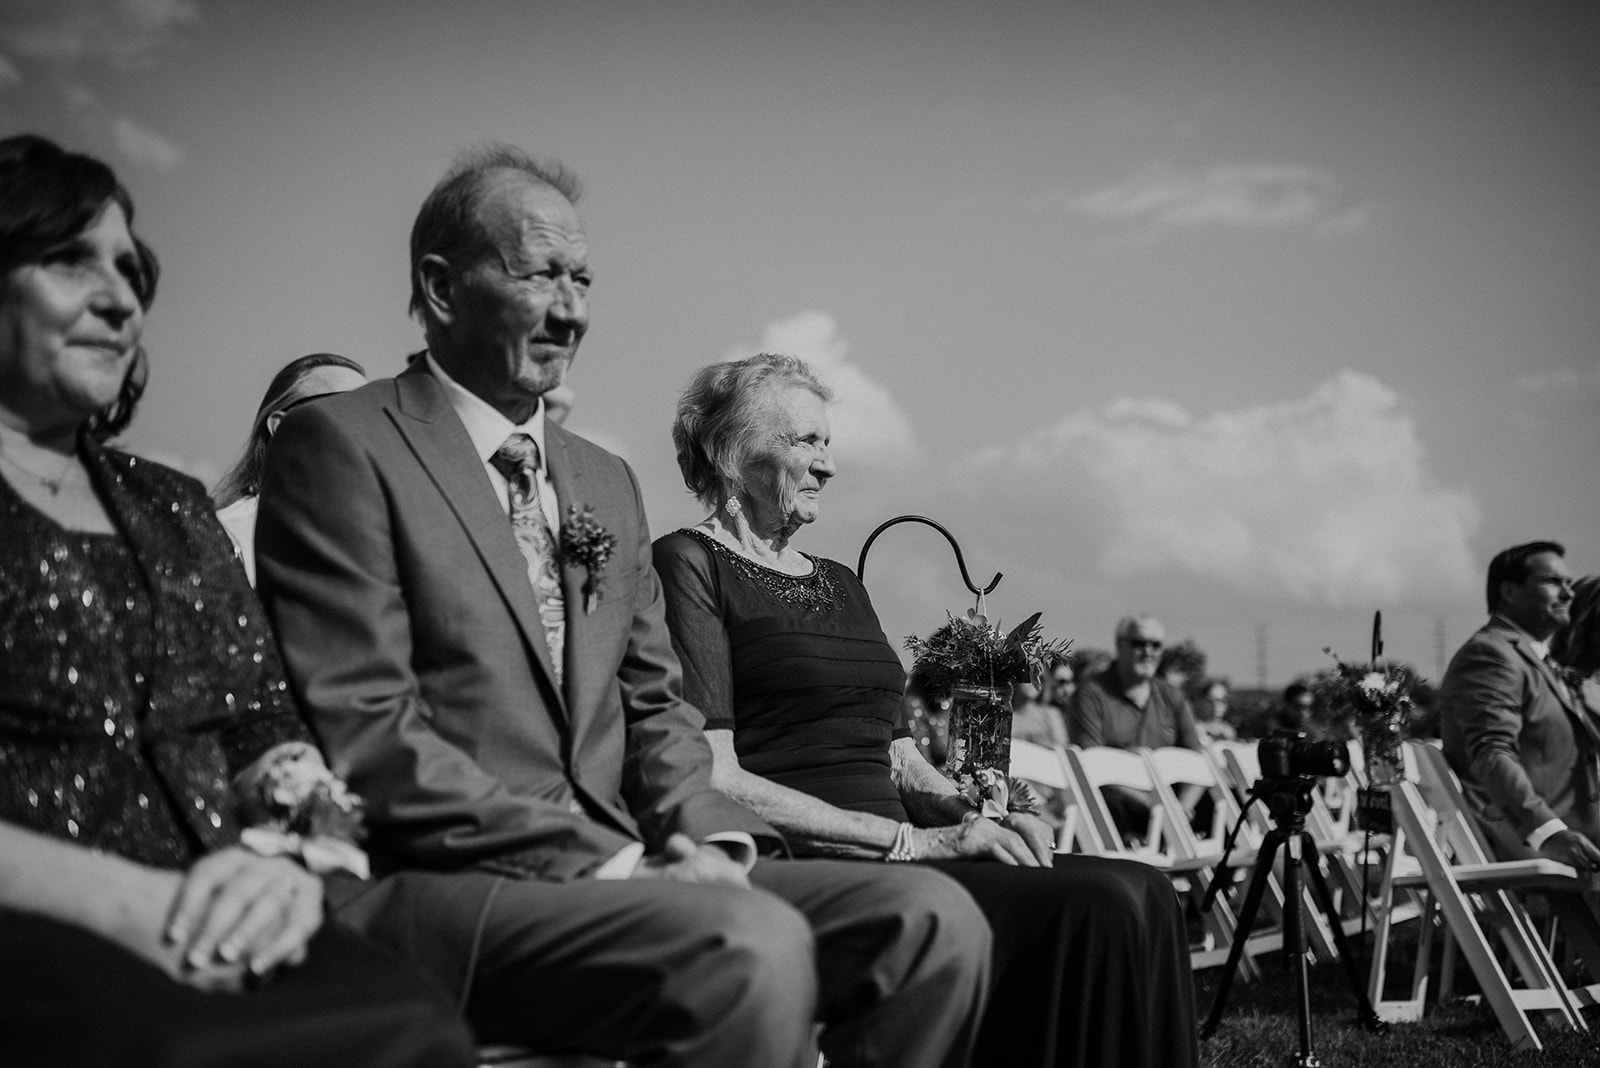 overthevineswisconsinwedding_0636.jpg